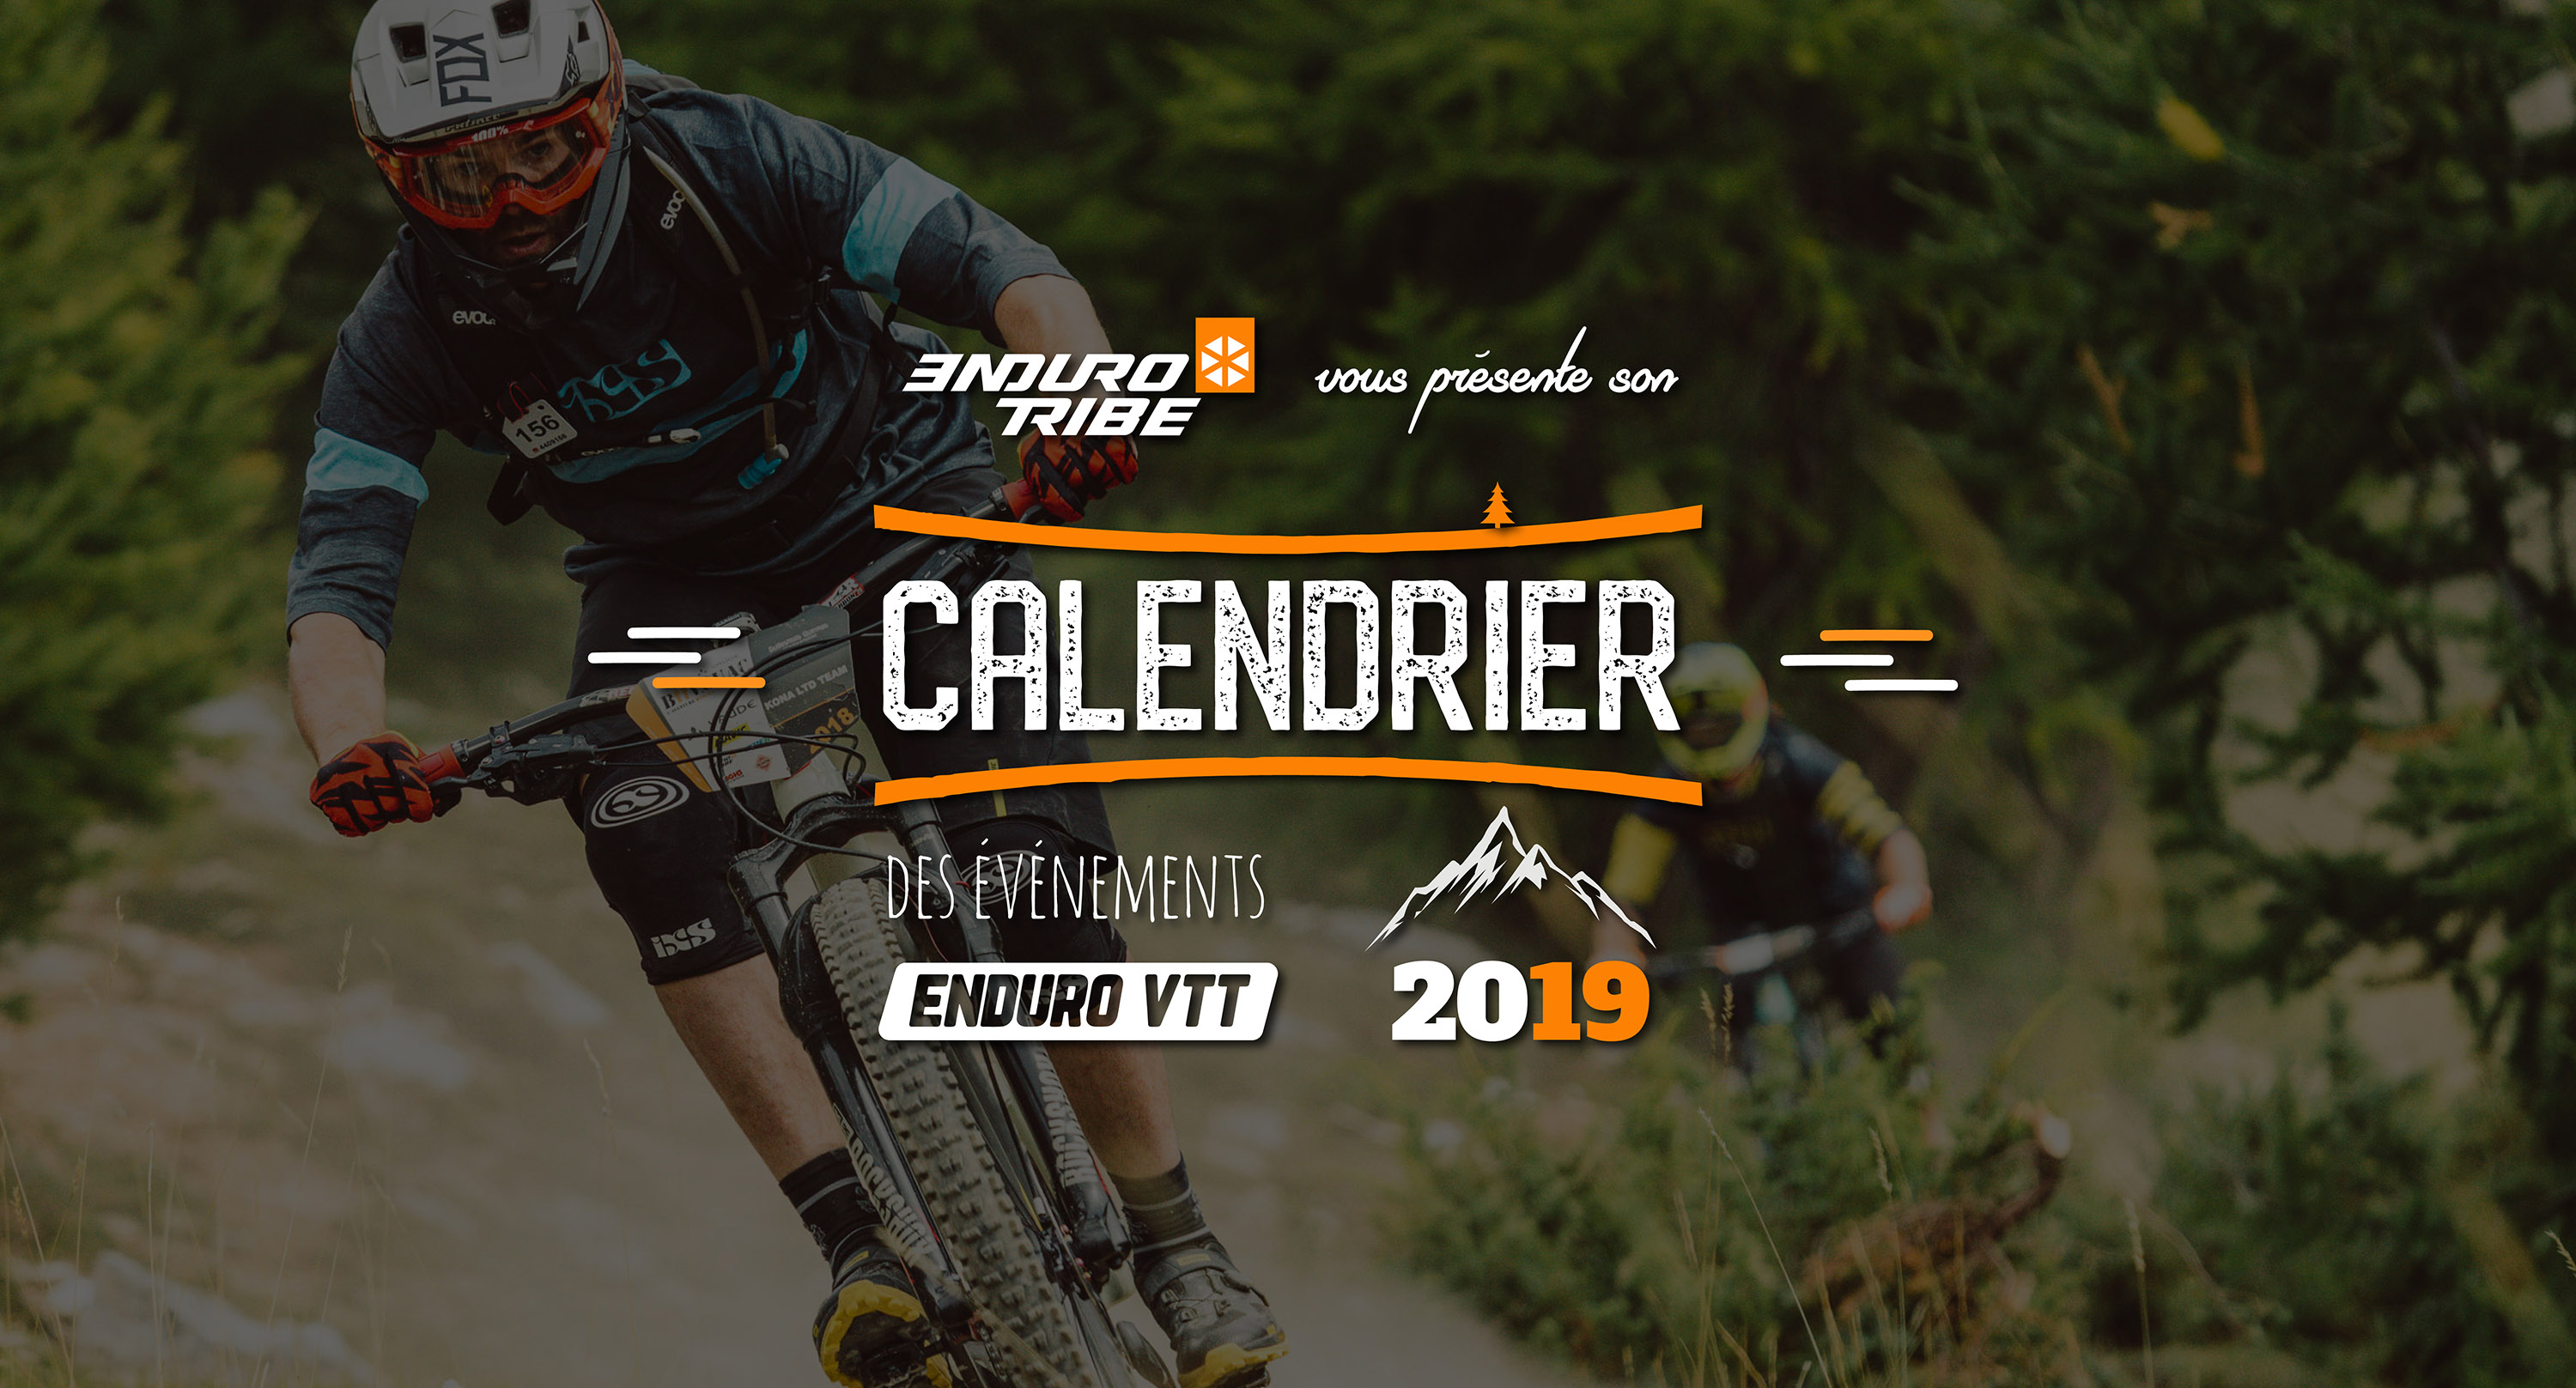 Calendrier Rallye Rhone Alpes 2019.Calendrier 2019 Des Evenements Am Enduro Vtt Endurotribe